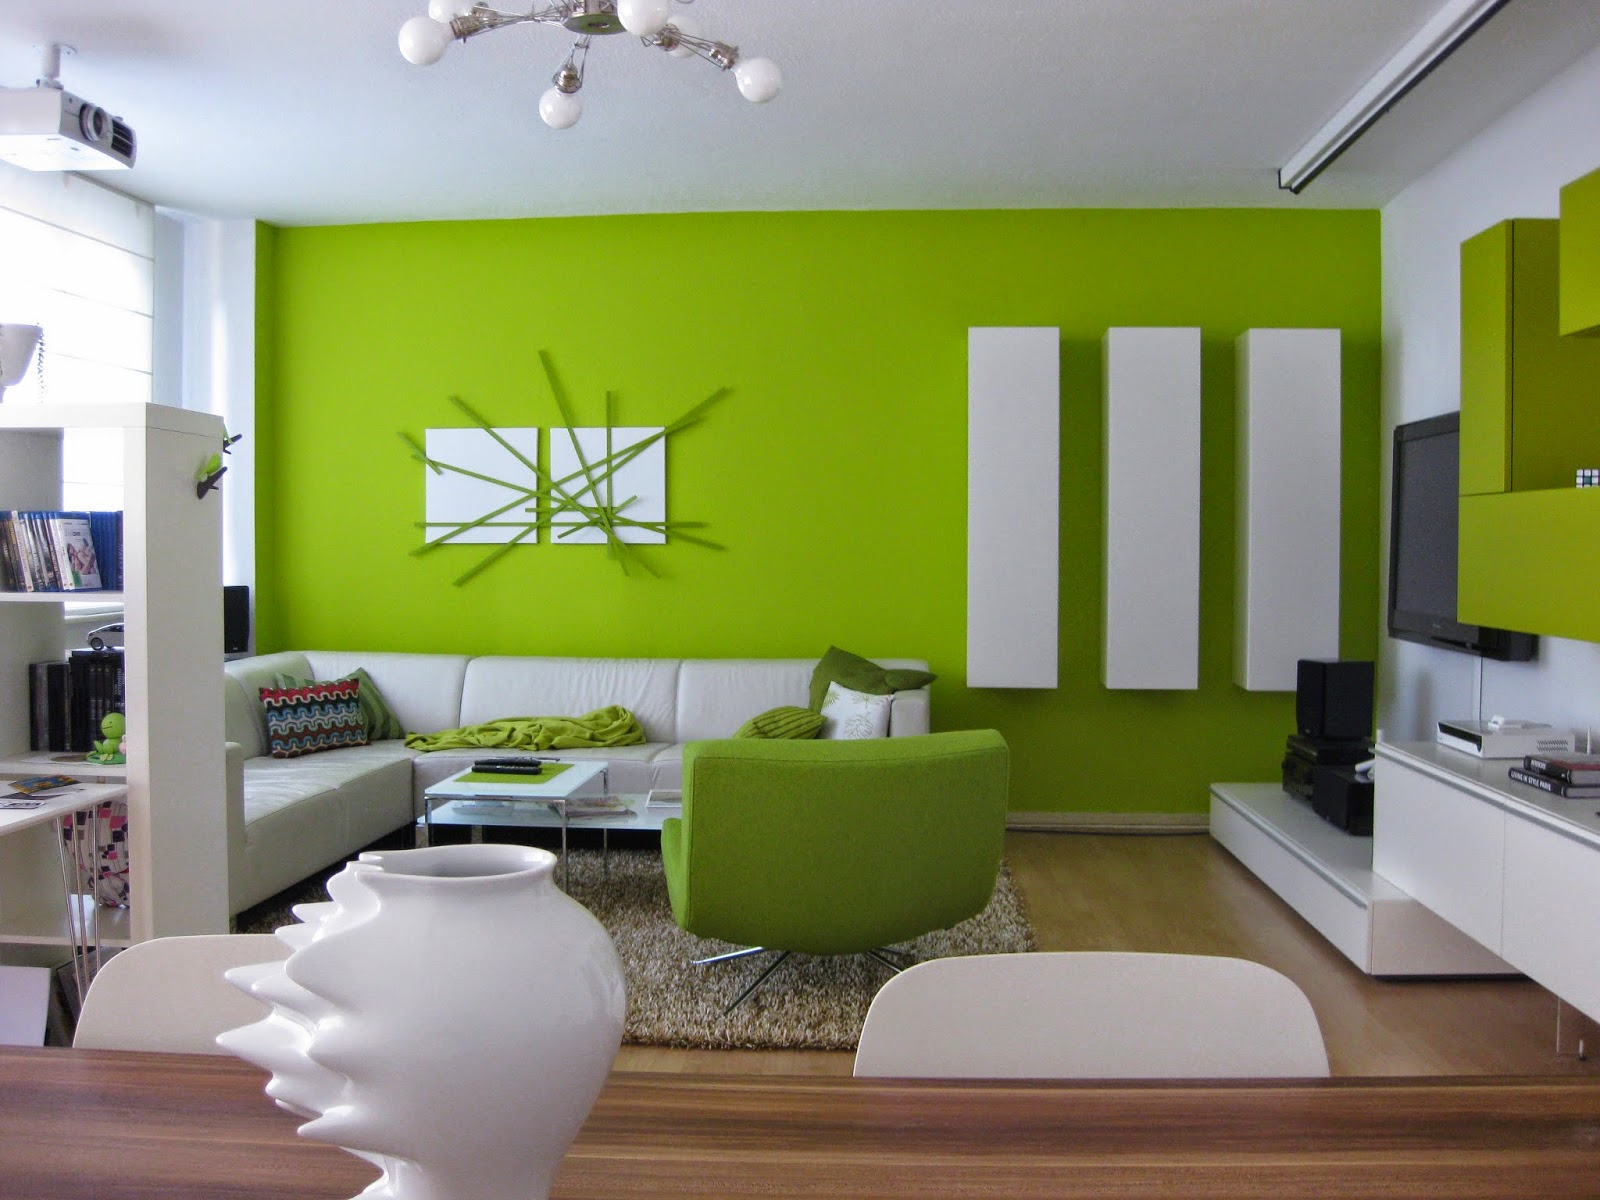 Fotos de sala en color verde salas con estilo for Colores para decorar interiores